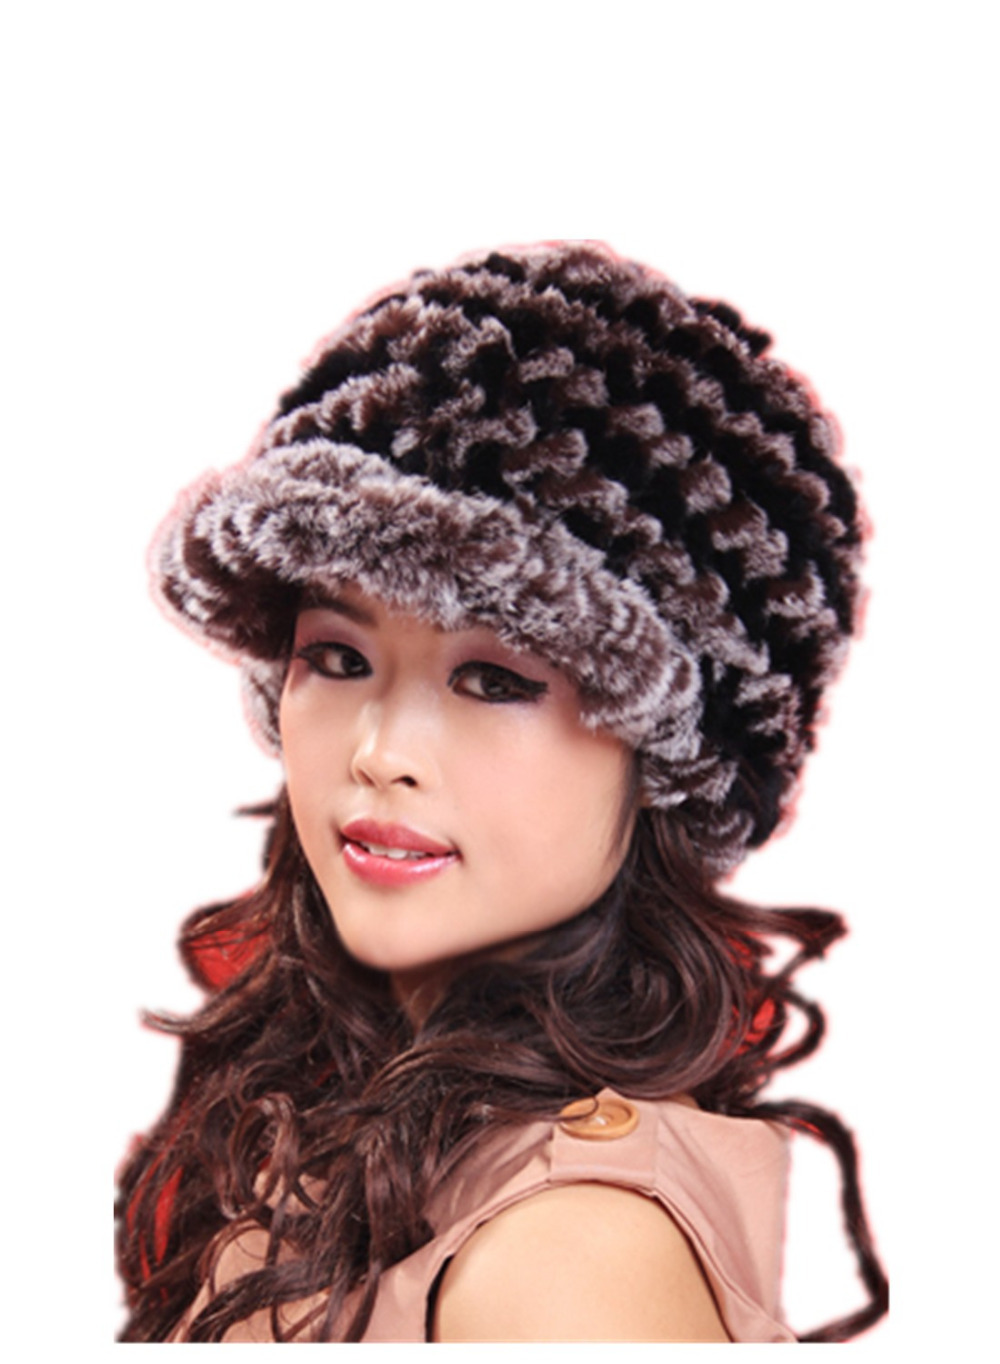 fur hat for women autumn and winter black red fashion warm knitted  natural rex rabbit  H901 shiloh crib stroller toy crib mobile baby plush doll infant children newborn boy girl gift with 60 songs musical box holder arm